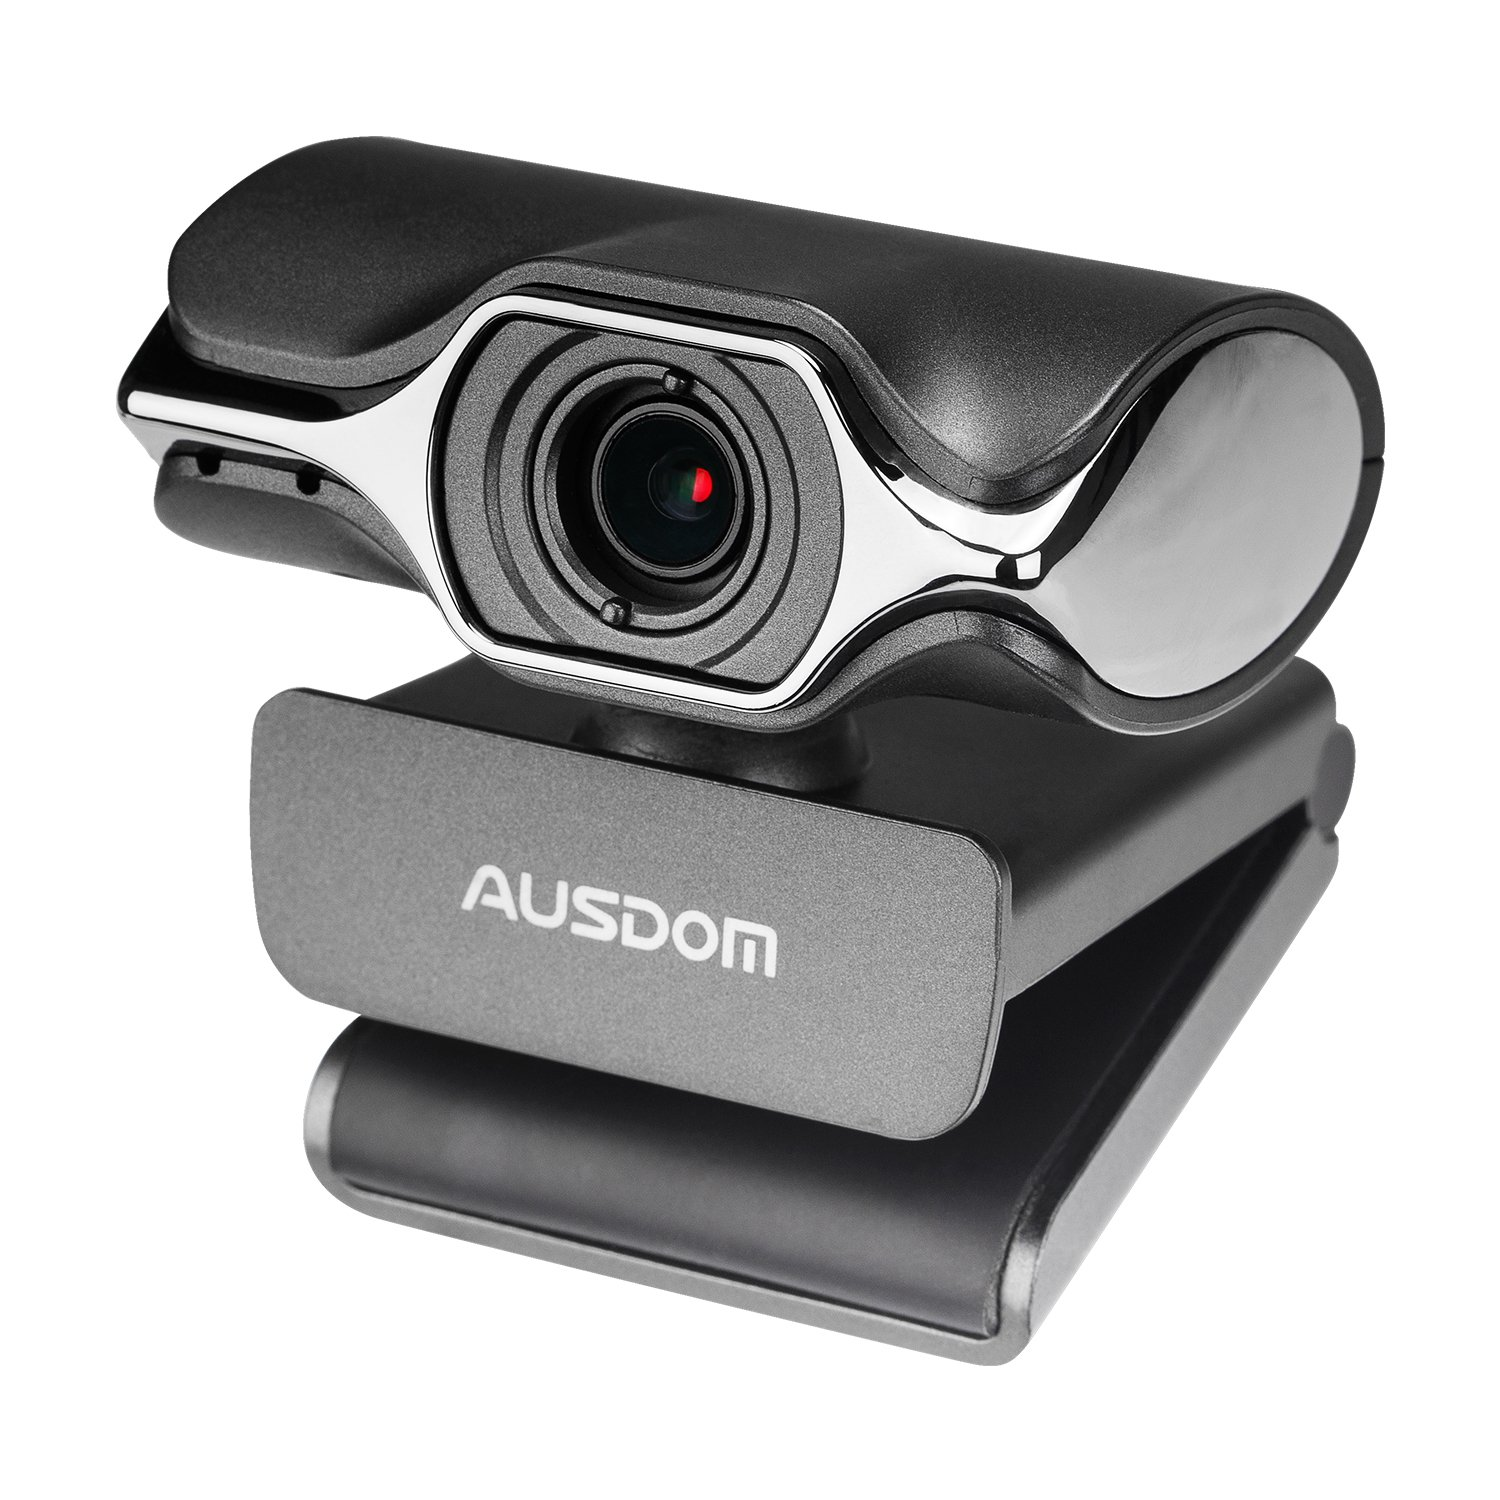 Webcam Full HD 1080P OBS Live Streaming Camera Computer Video Calling Recording PC Web Camera Built-in Microphone YouTube Twitch